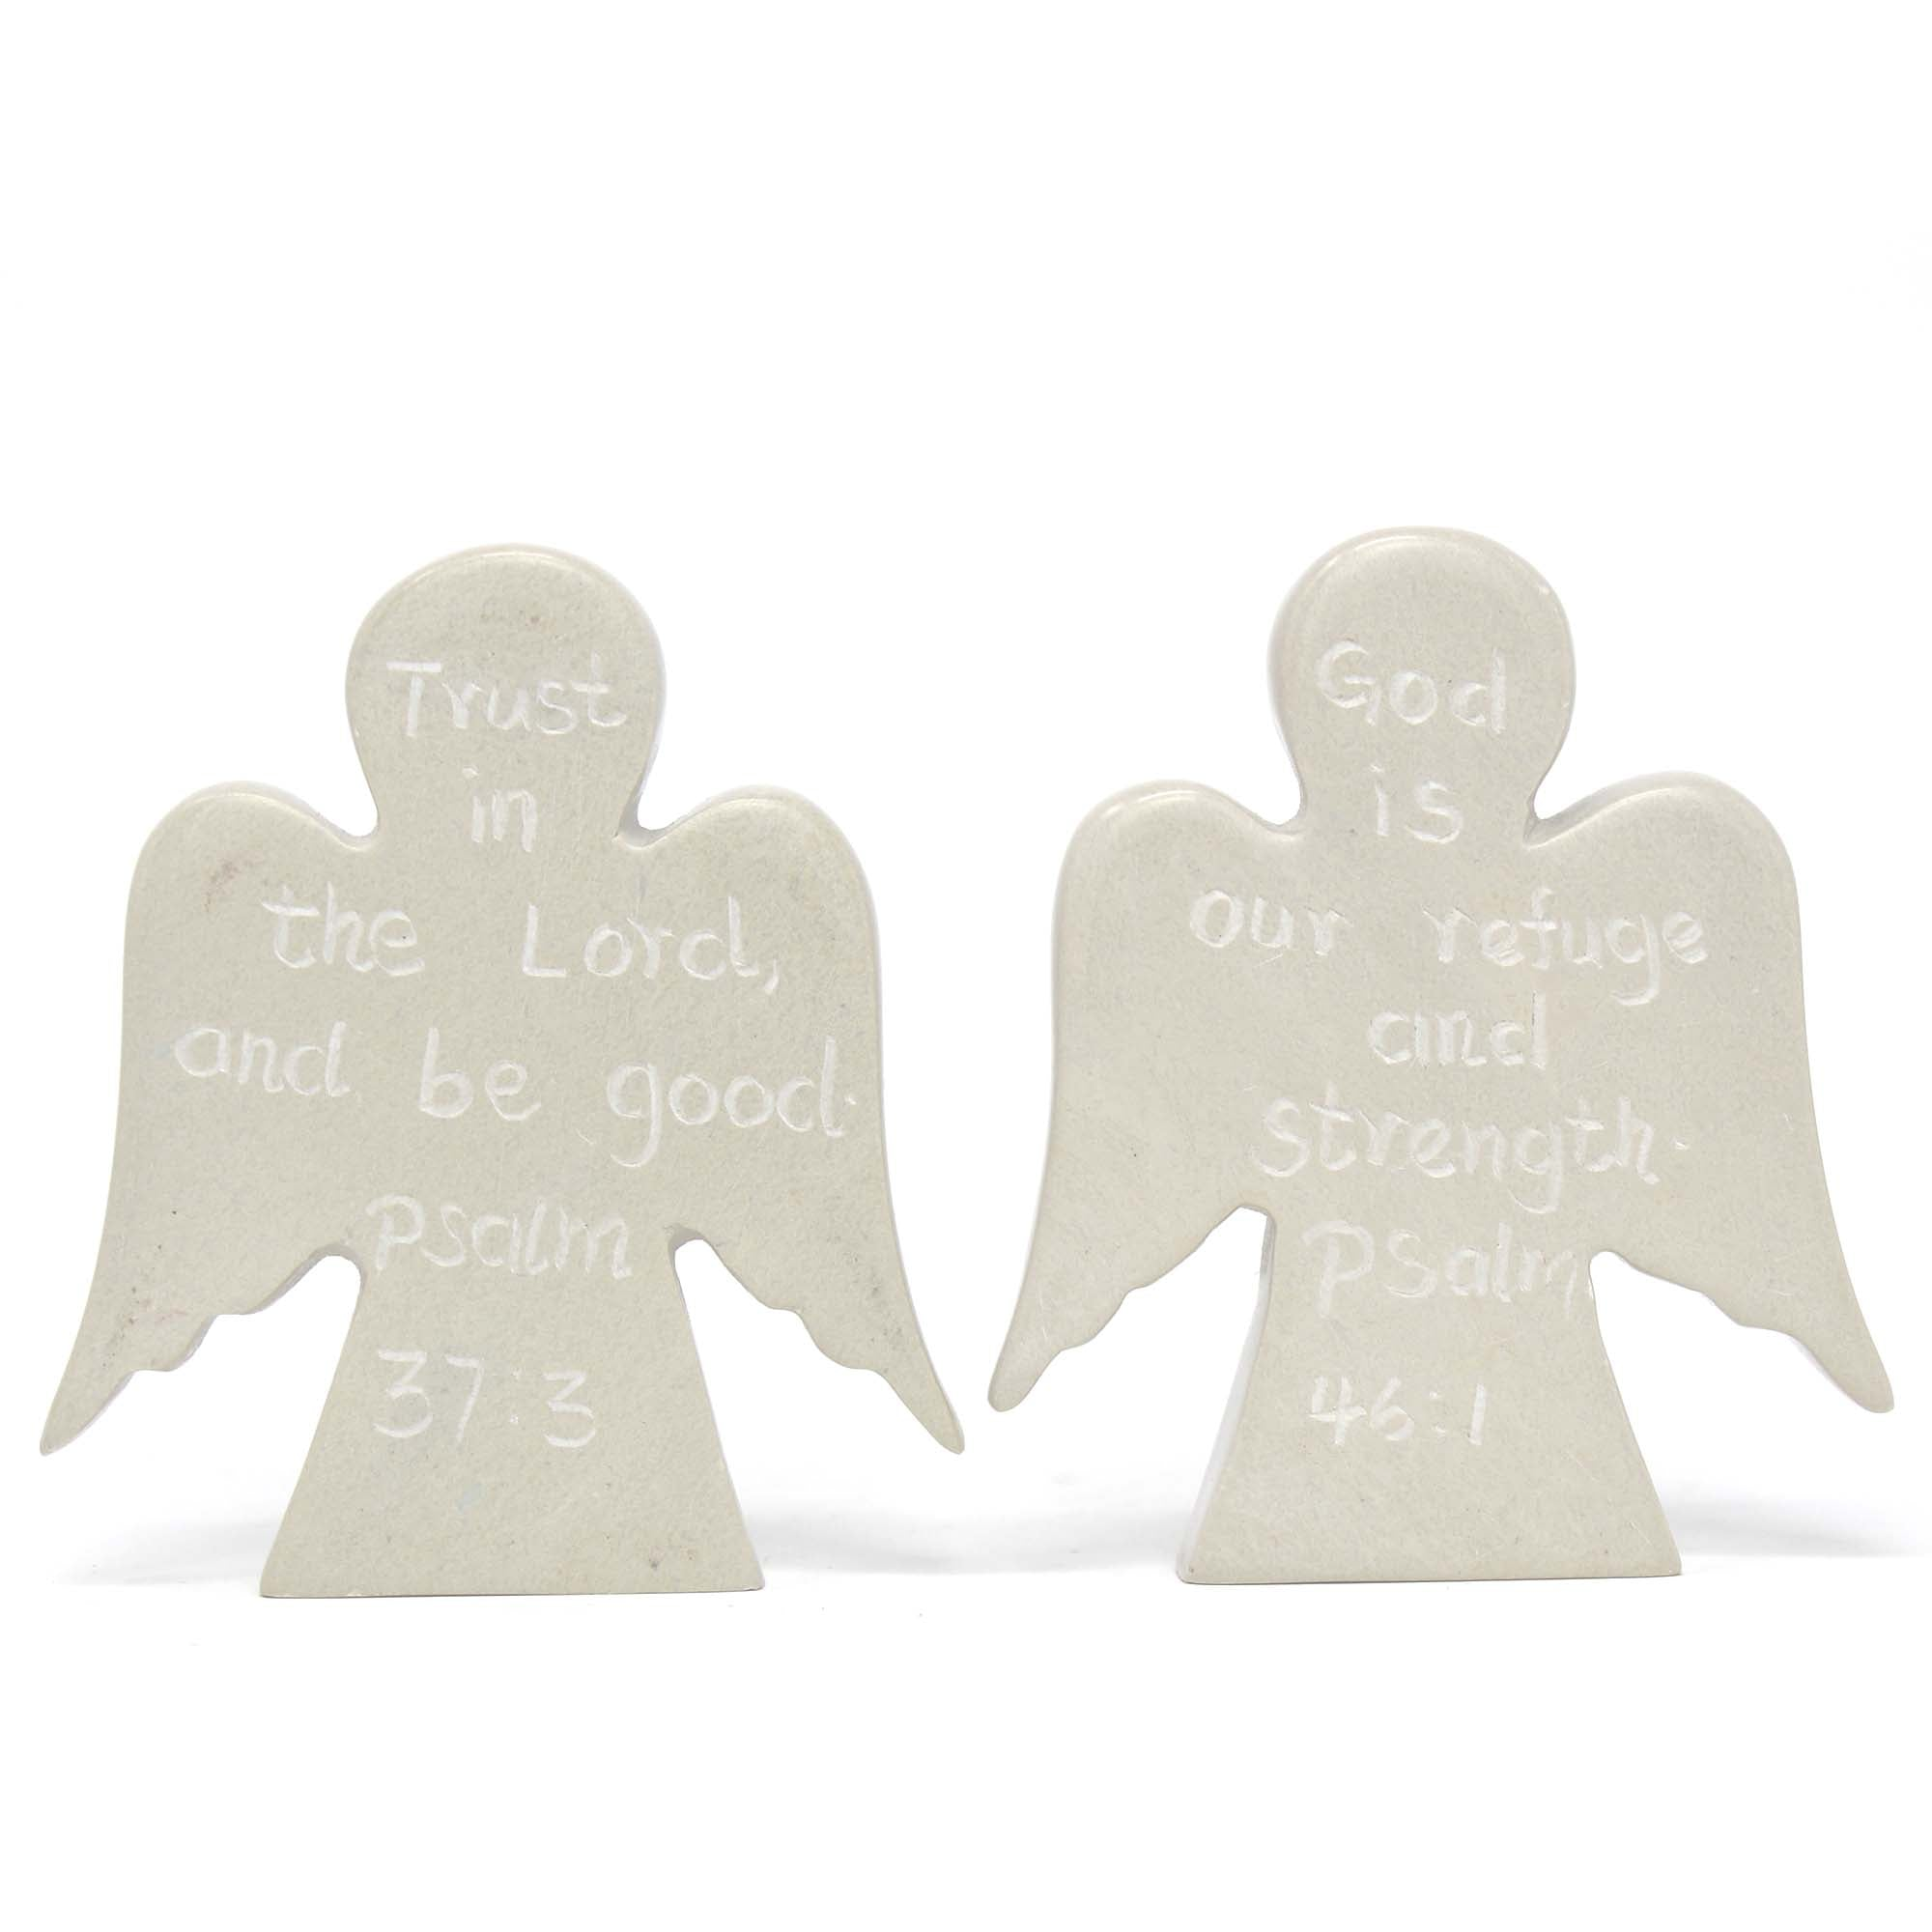 Angel Devotional Tokens with Psalm Inscriptions, Set of 2